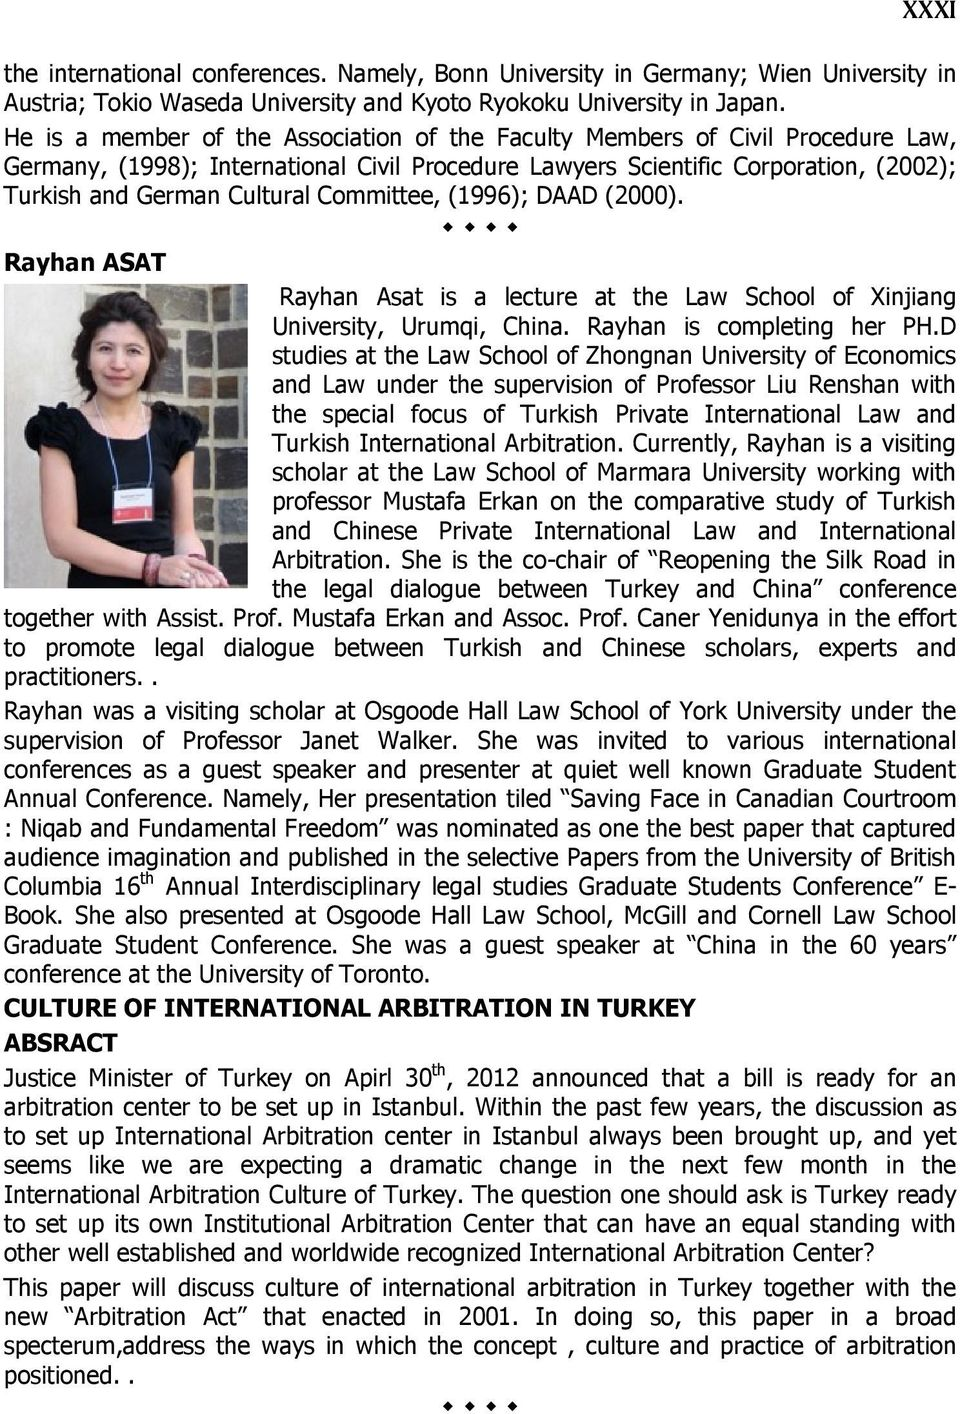 Committee, (1996); DAAD (2000). Rayhan ASAT Rayhan Asat is a lecture at the Law School of Xinjiang University, Urumqi, China. Rayhan is completing her PH.